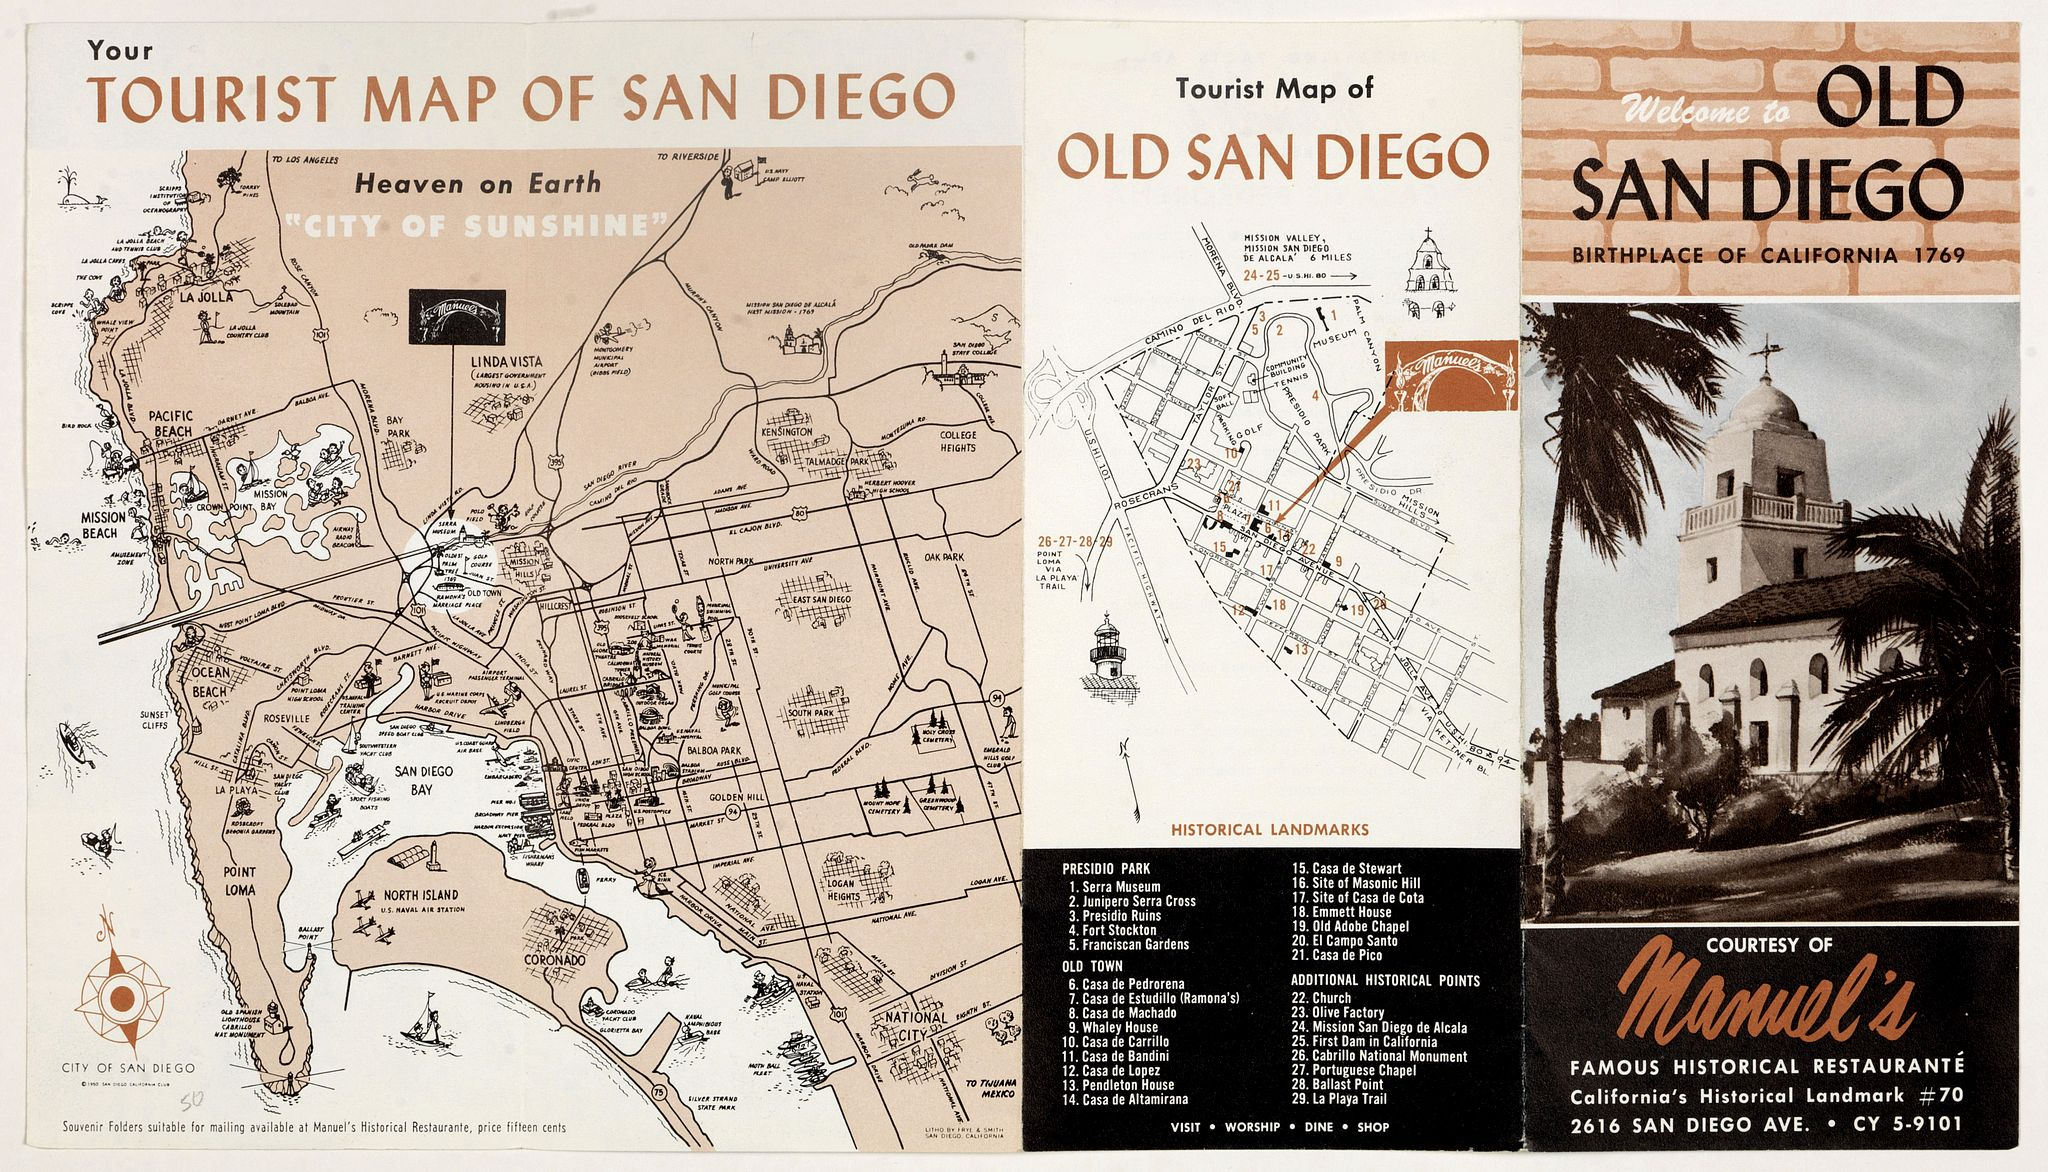 FRYE & SMITH,  Welcome to old San Diego, birthplace of California 1769., antique map, old maps